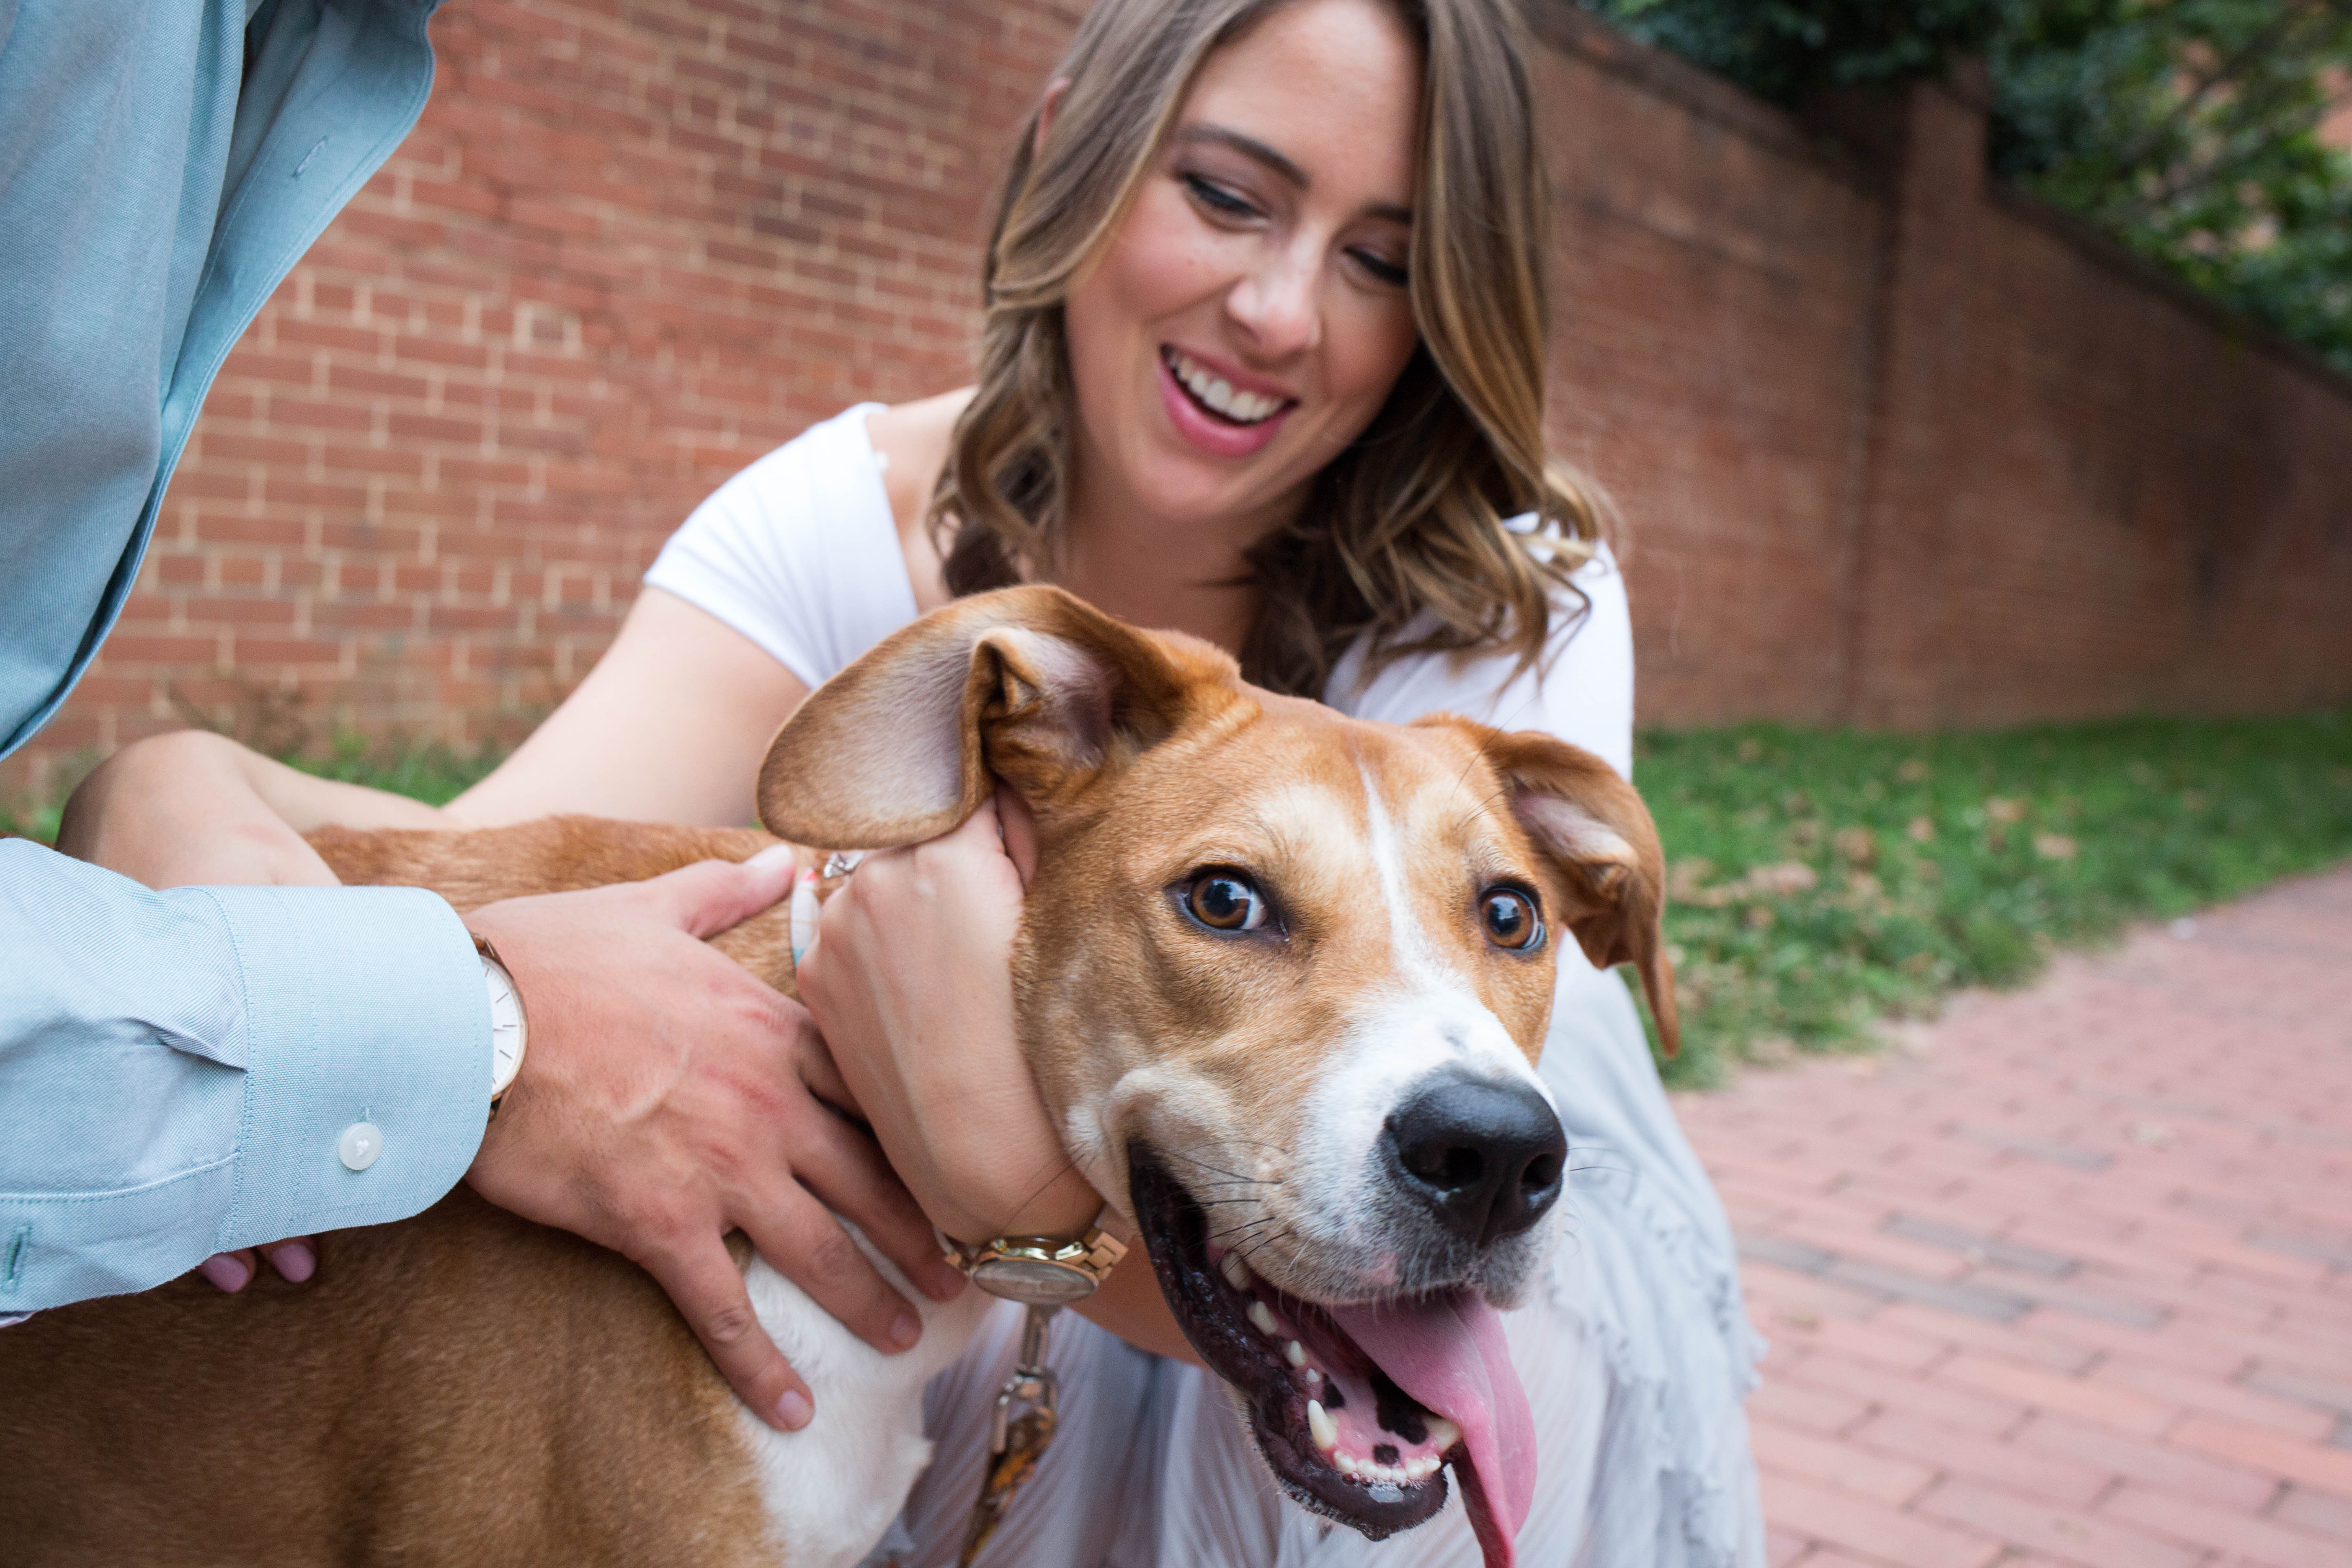 "Meet Penny, a two-year-old Beagle/Hound mix who recently had the honor of participating in mom and dad's engagement photoshoot! Though Penny won't be in attendance at the wedding (don't worry, she's being treated to an all-expenses paid vacation at Dogtopia that week), her parents still wanted her prominently featured in their engagement photos as ""she is family."" In fact, Penny was a gift from her dad to her mom on New Years Day in 2016; she was adopted from Homeward Trails in Fairfax Station. Penny loves peanut butter, going to the dog park  and watching The Bachelor with her mom and dad, but she is not a big fan of the Roomba. Her special skills include eating whatever she pleases and maintaining an awesome figure -- we're jealous Penny! If you or someone you know has a pet you'd like featured, email us at dcrefined@gmail.com or tag #DCRUFFined and your furbaby could be the next spotlighted! (Image: Amanda Andrade-Rhoades/ DC Refined)"